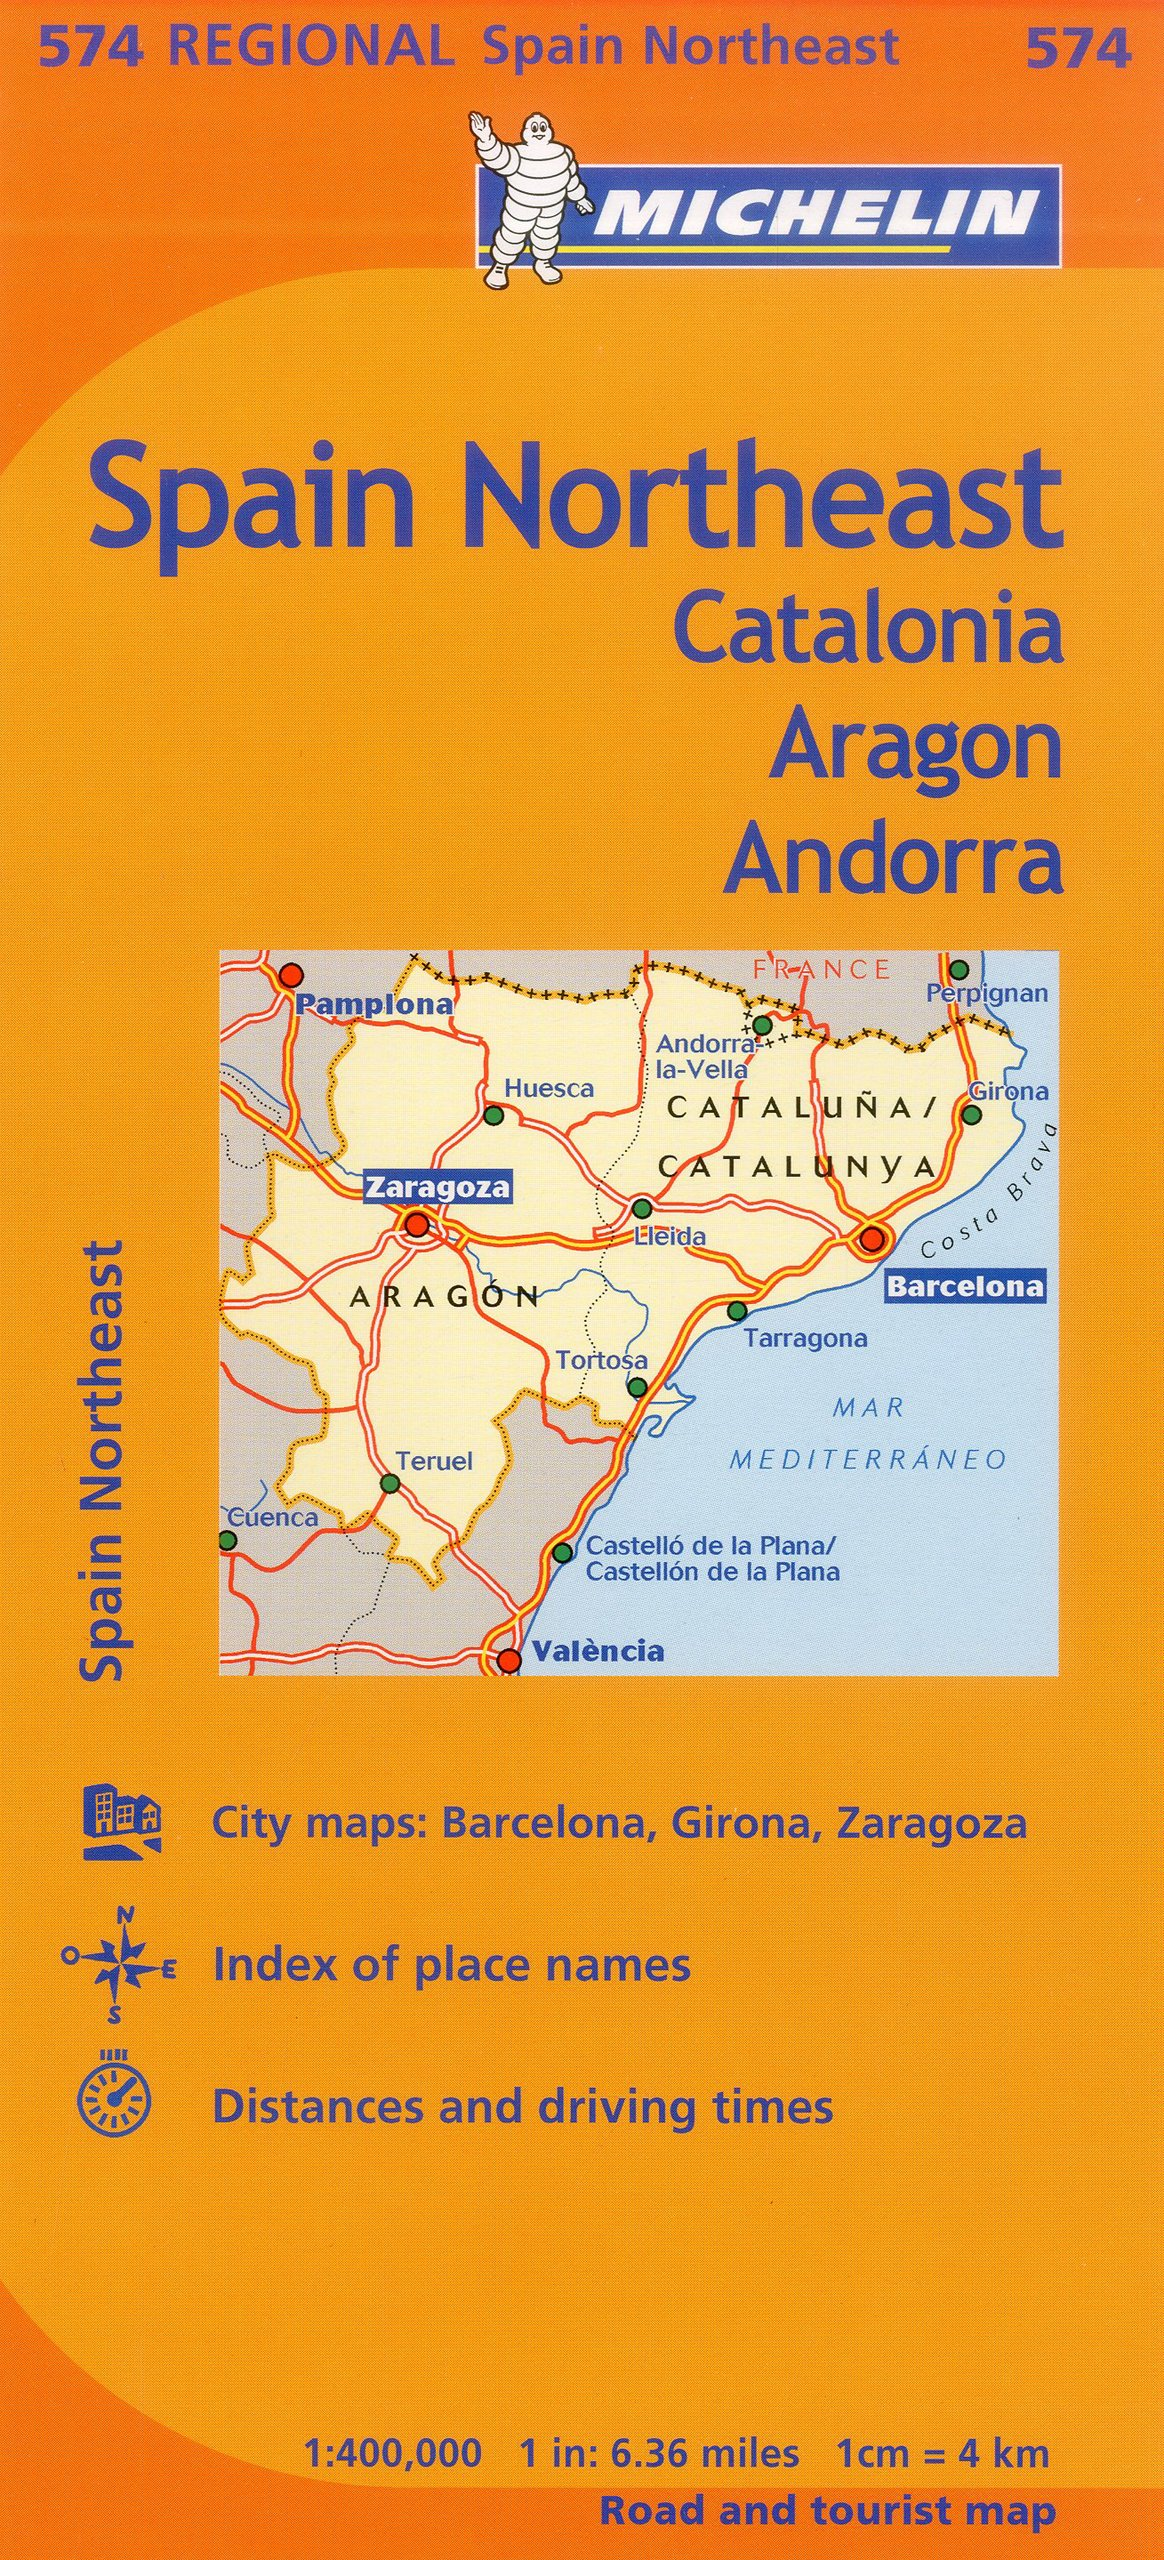 Travel Map Of Spain.Michelin Spain Northeast Catalonia Aragon Andorra Map 574 Maps